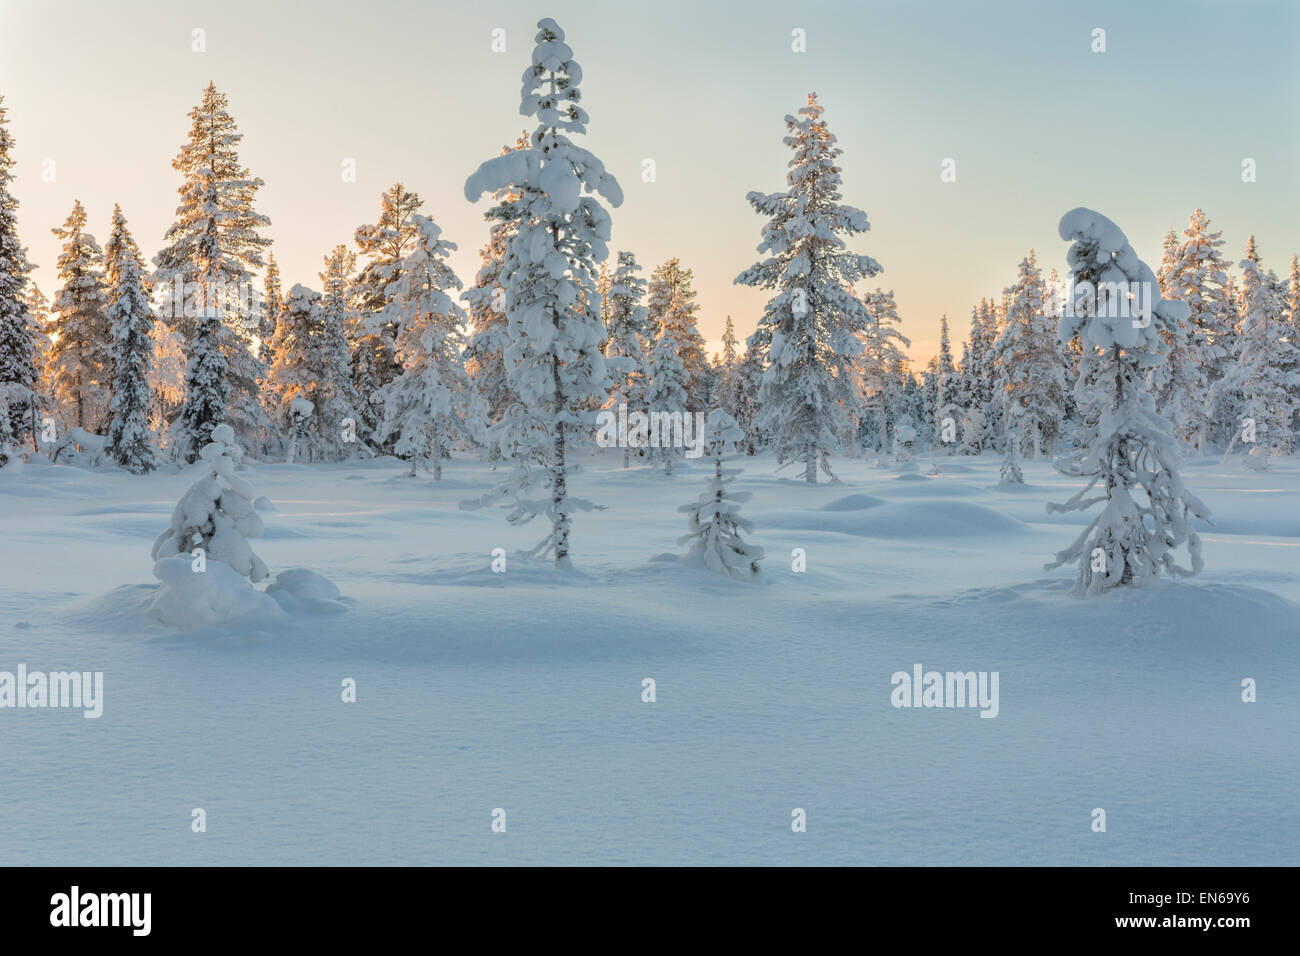 Beautifully winter landscape with plenty of snow and snow on the trees, Gällivare Sweden - Stock Image